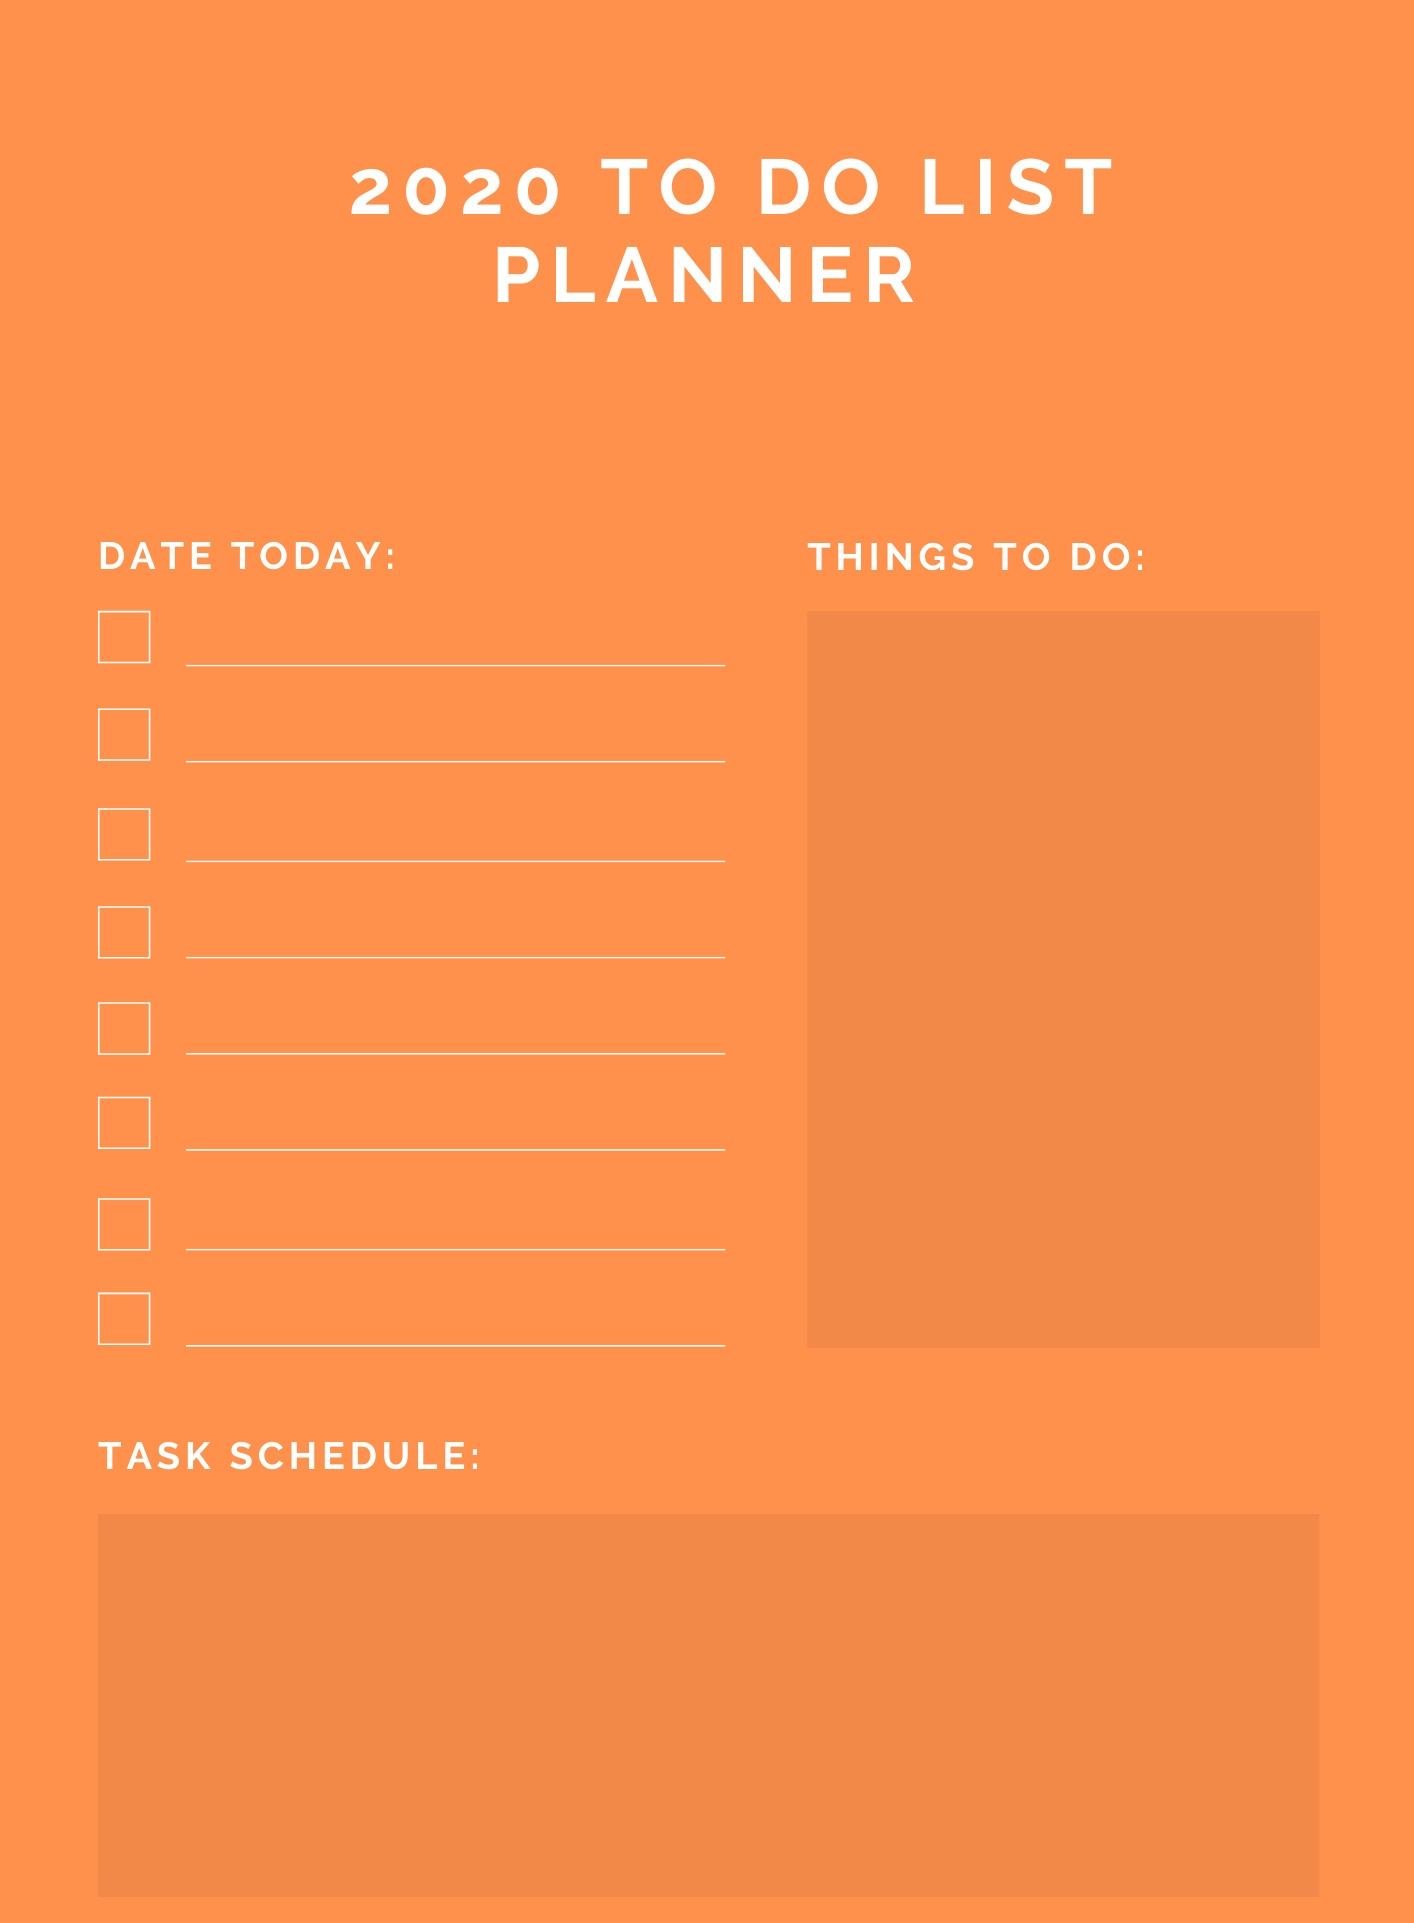 2020 To Do List Family Planner